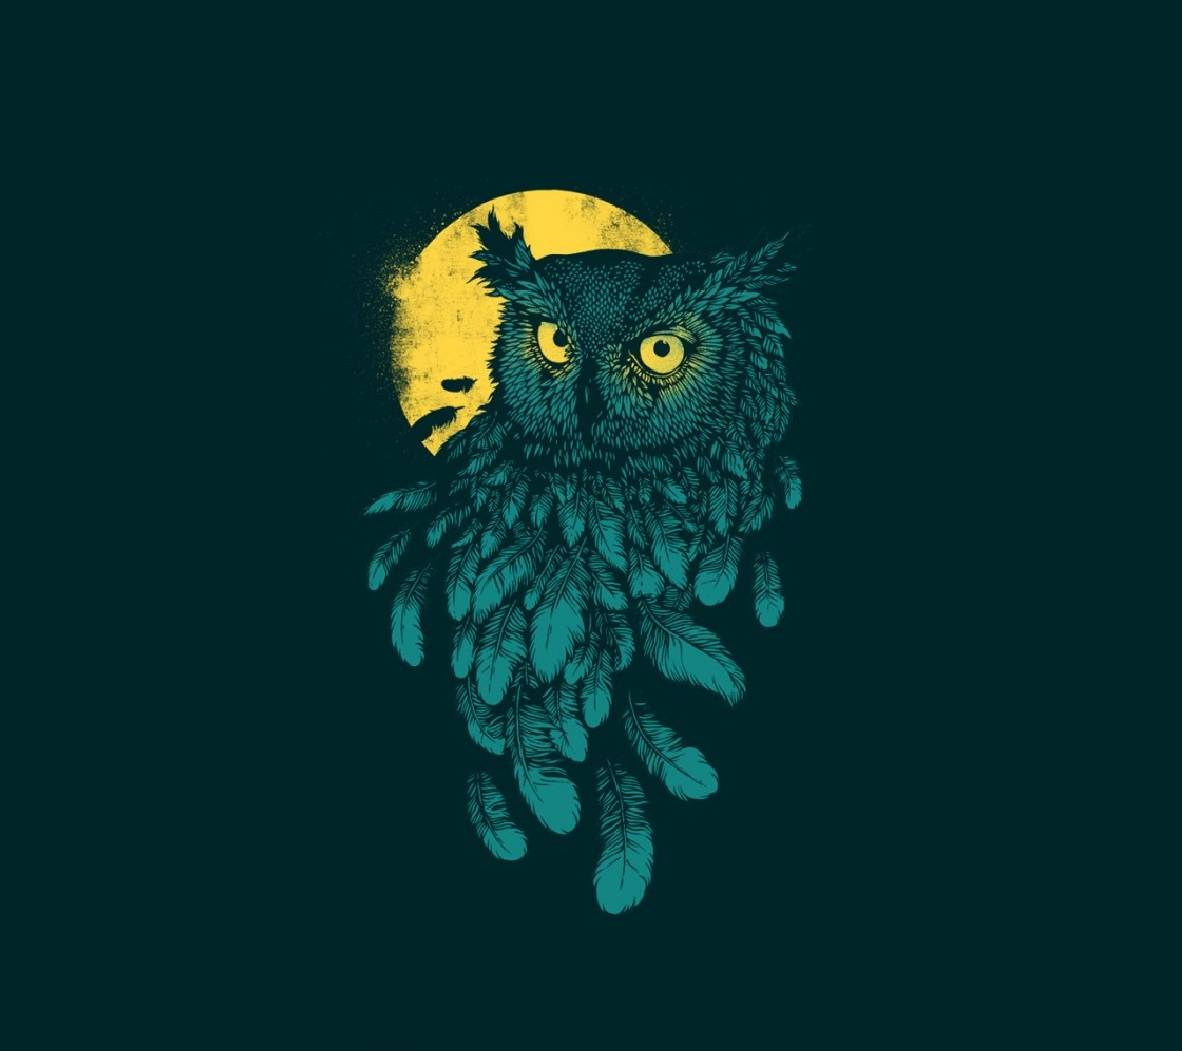 Free Owl Wallpapers: Owl And Moon Wallpaper By Agaaa_K